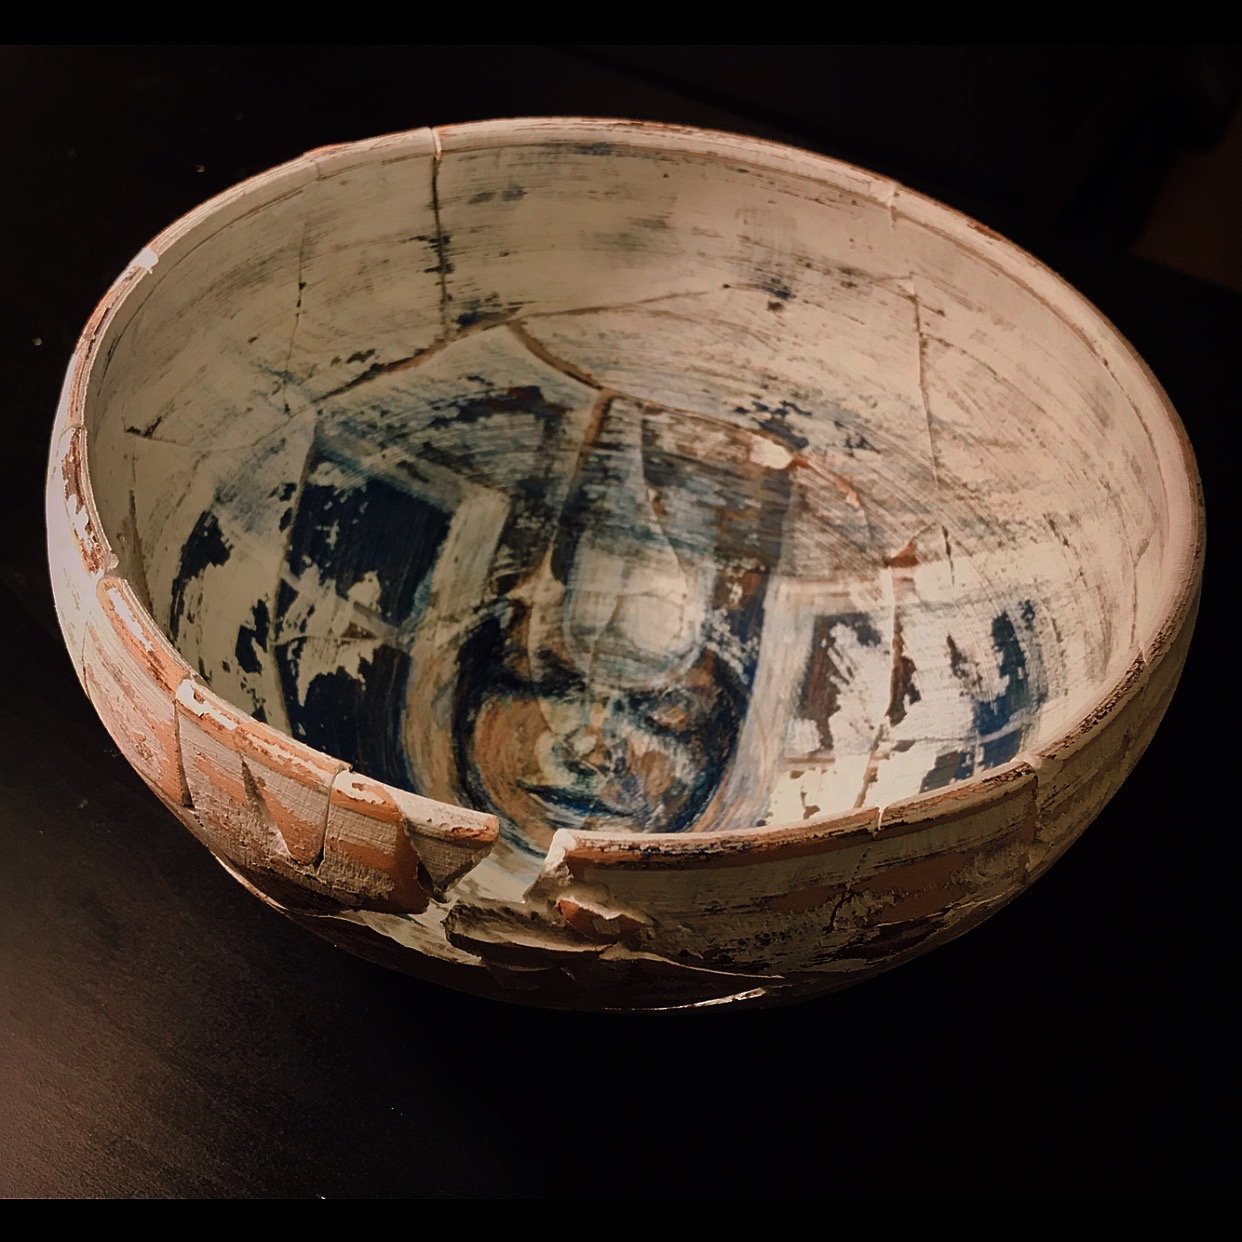 hadieh-afshani-land-connection-home-mixed-media-on-ceramic-10x10x7-inches-350.jpg